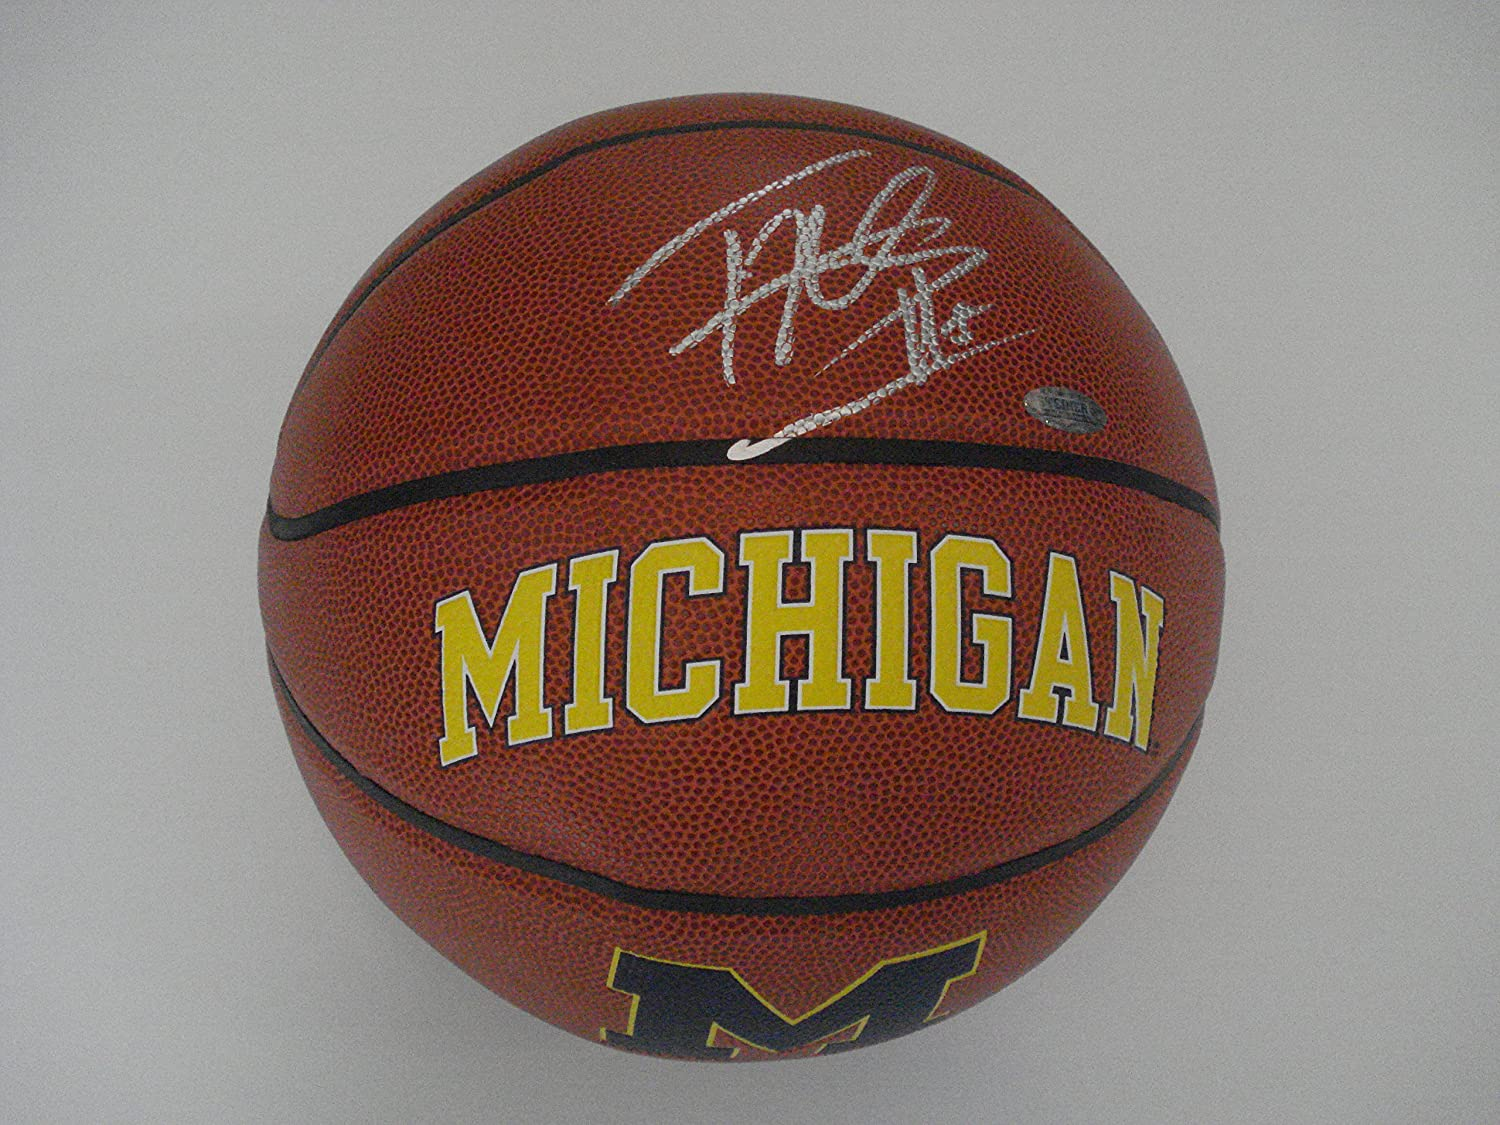 587aca1cb1c Knicks Tim Hardaway Jr. autographed full size Michigan basketball Steiner  at Amazon's Sports Collectibles Store